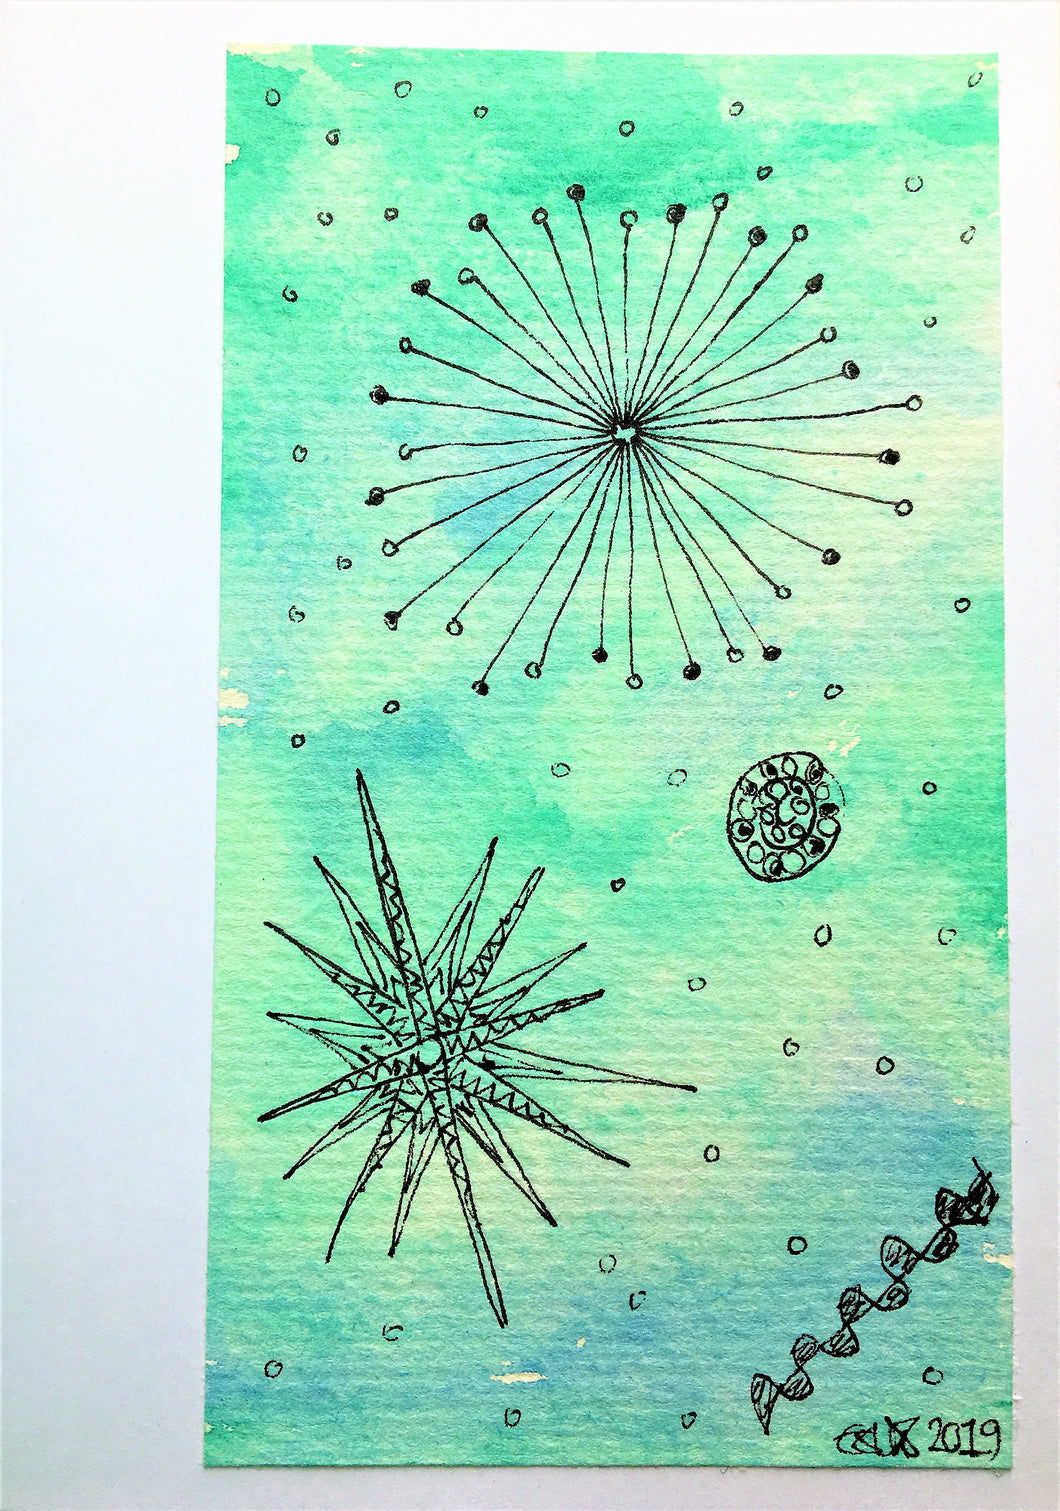 Handpainted Watercolour Greeting Card - Green/Blue with Stars and Circles Design - eDgE dEsiGn London